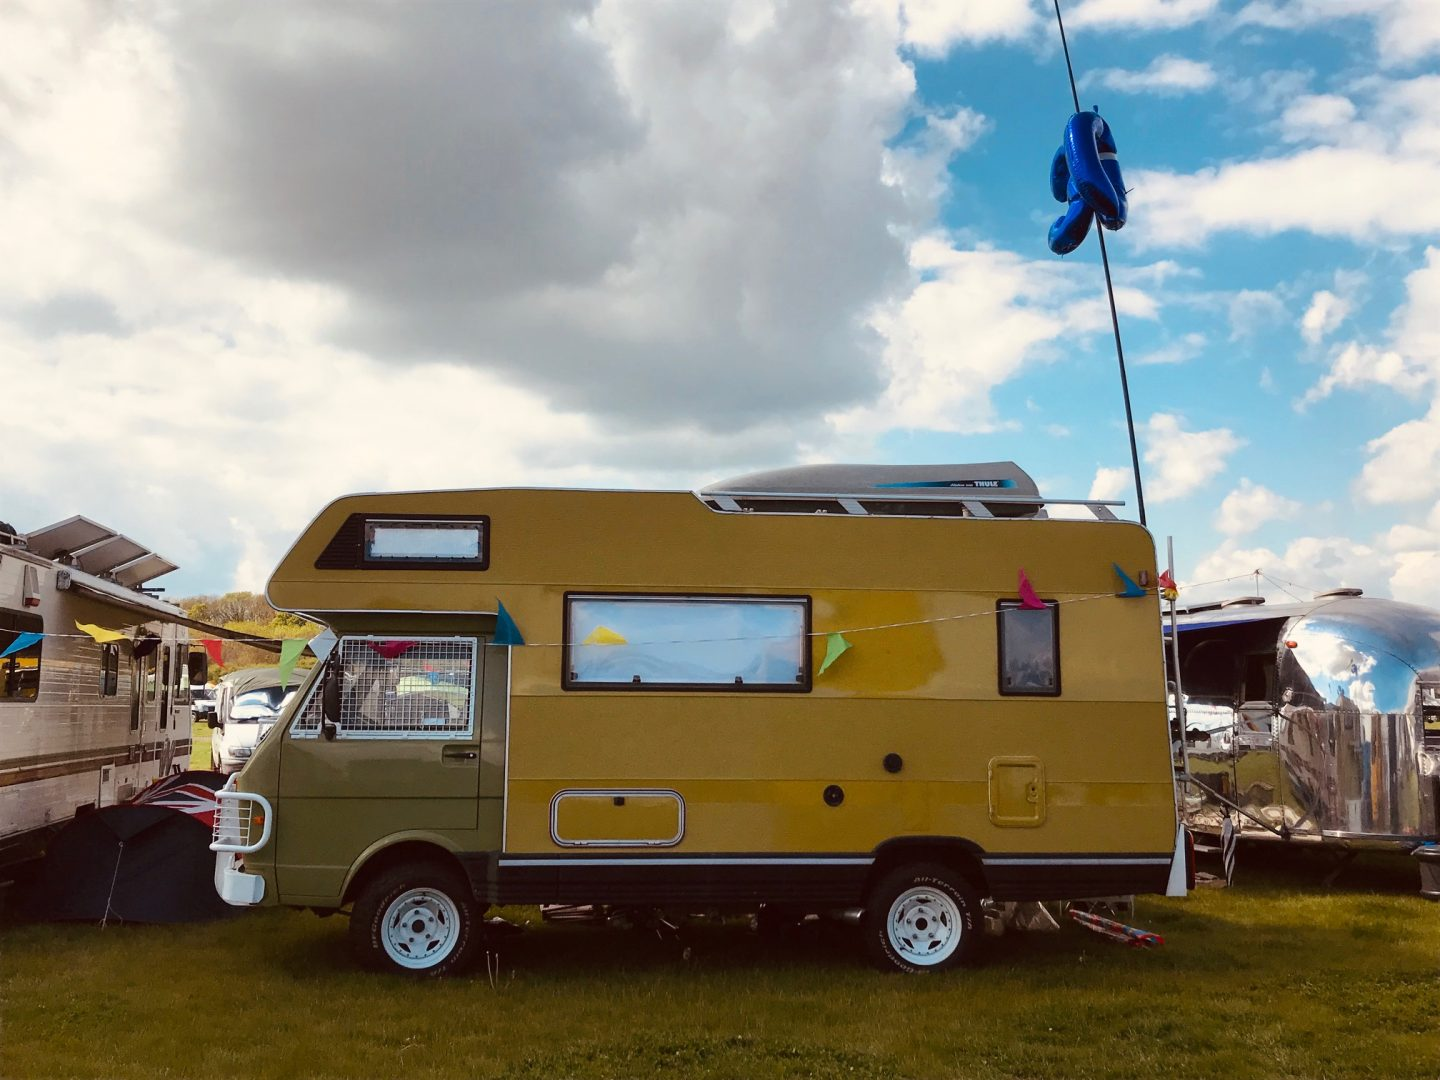 More quirky campers